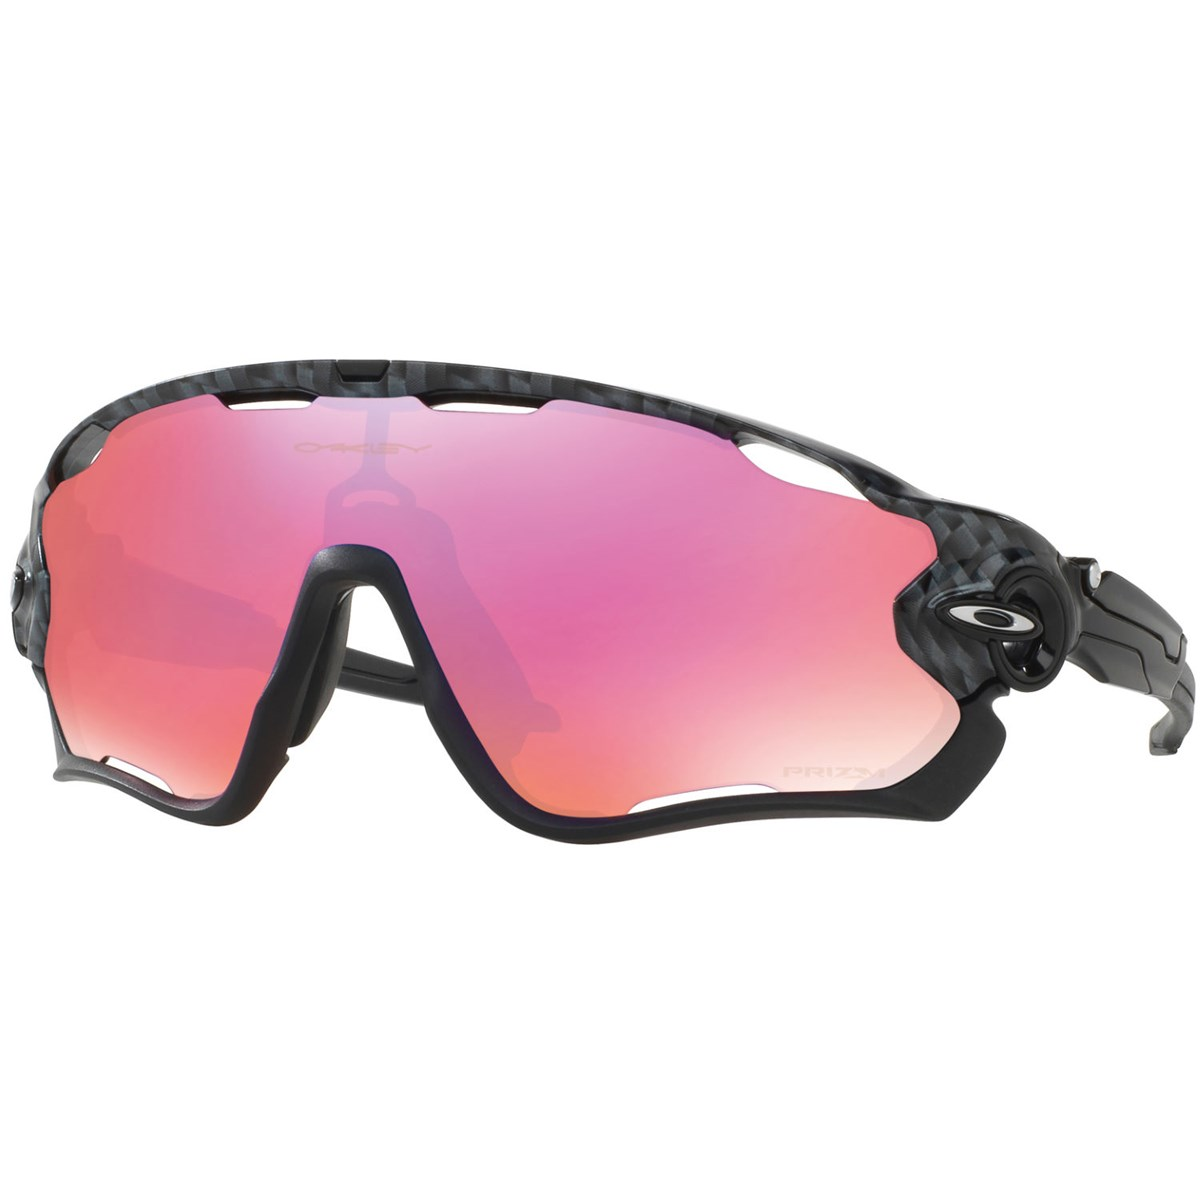 b854cdd20a Oakley Jawbreaker Carbon Fibre Prizm Trail. 0 (Be the first to add a  review!)